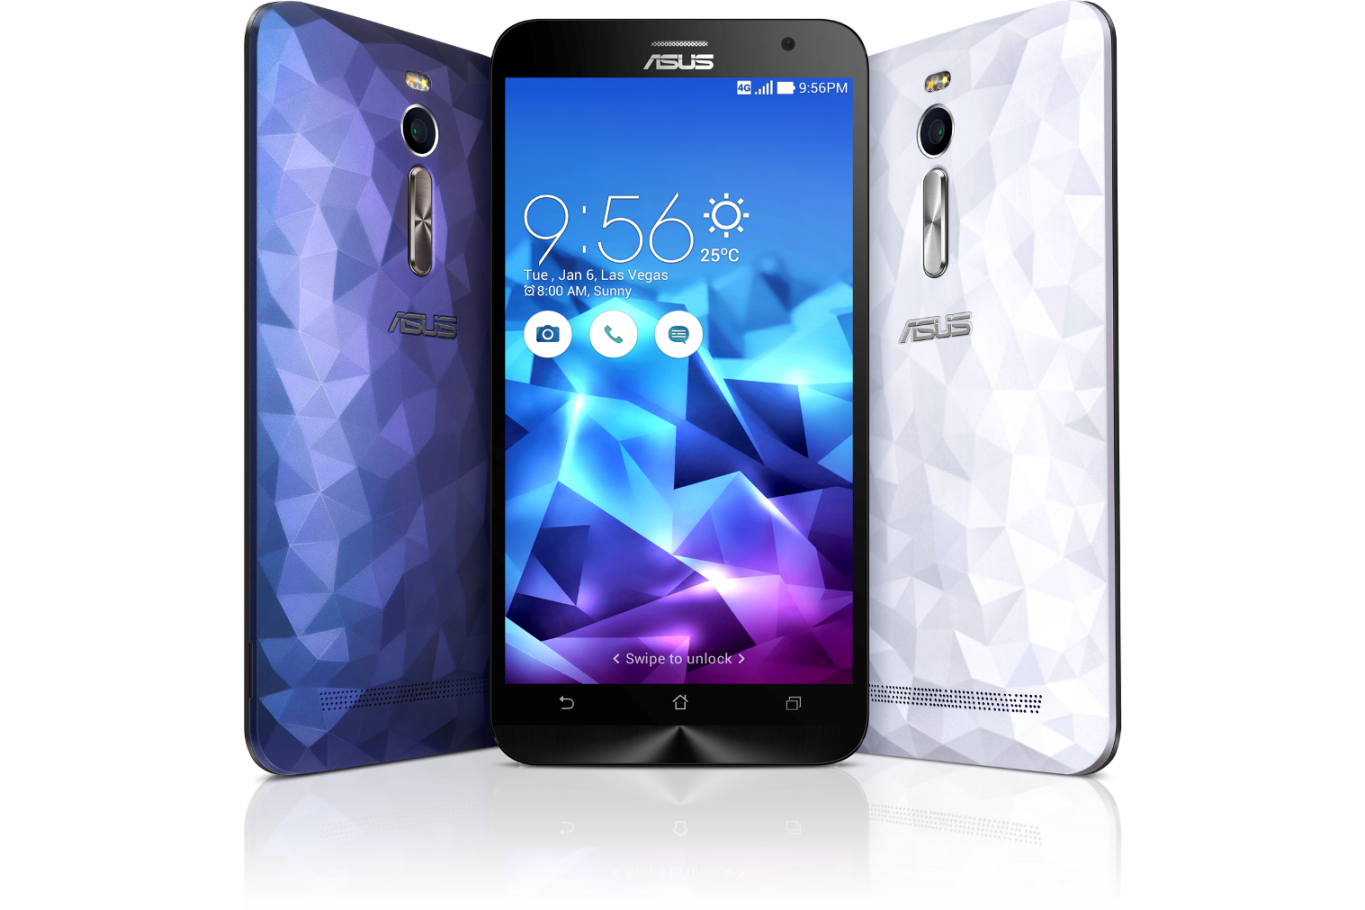 Microsoft android smartphone - Asus Reaches Deal With Microsoft Will Ship Android Devices Preinstalled Office Apps Zenfone 2 Deluxe